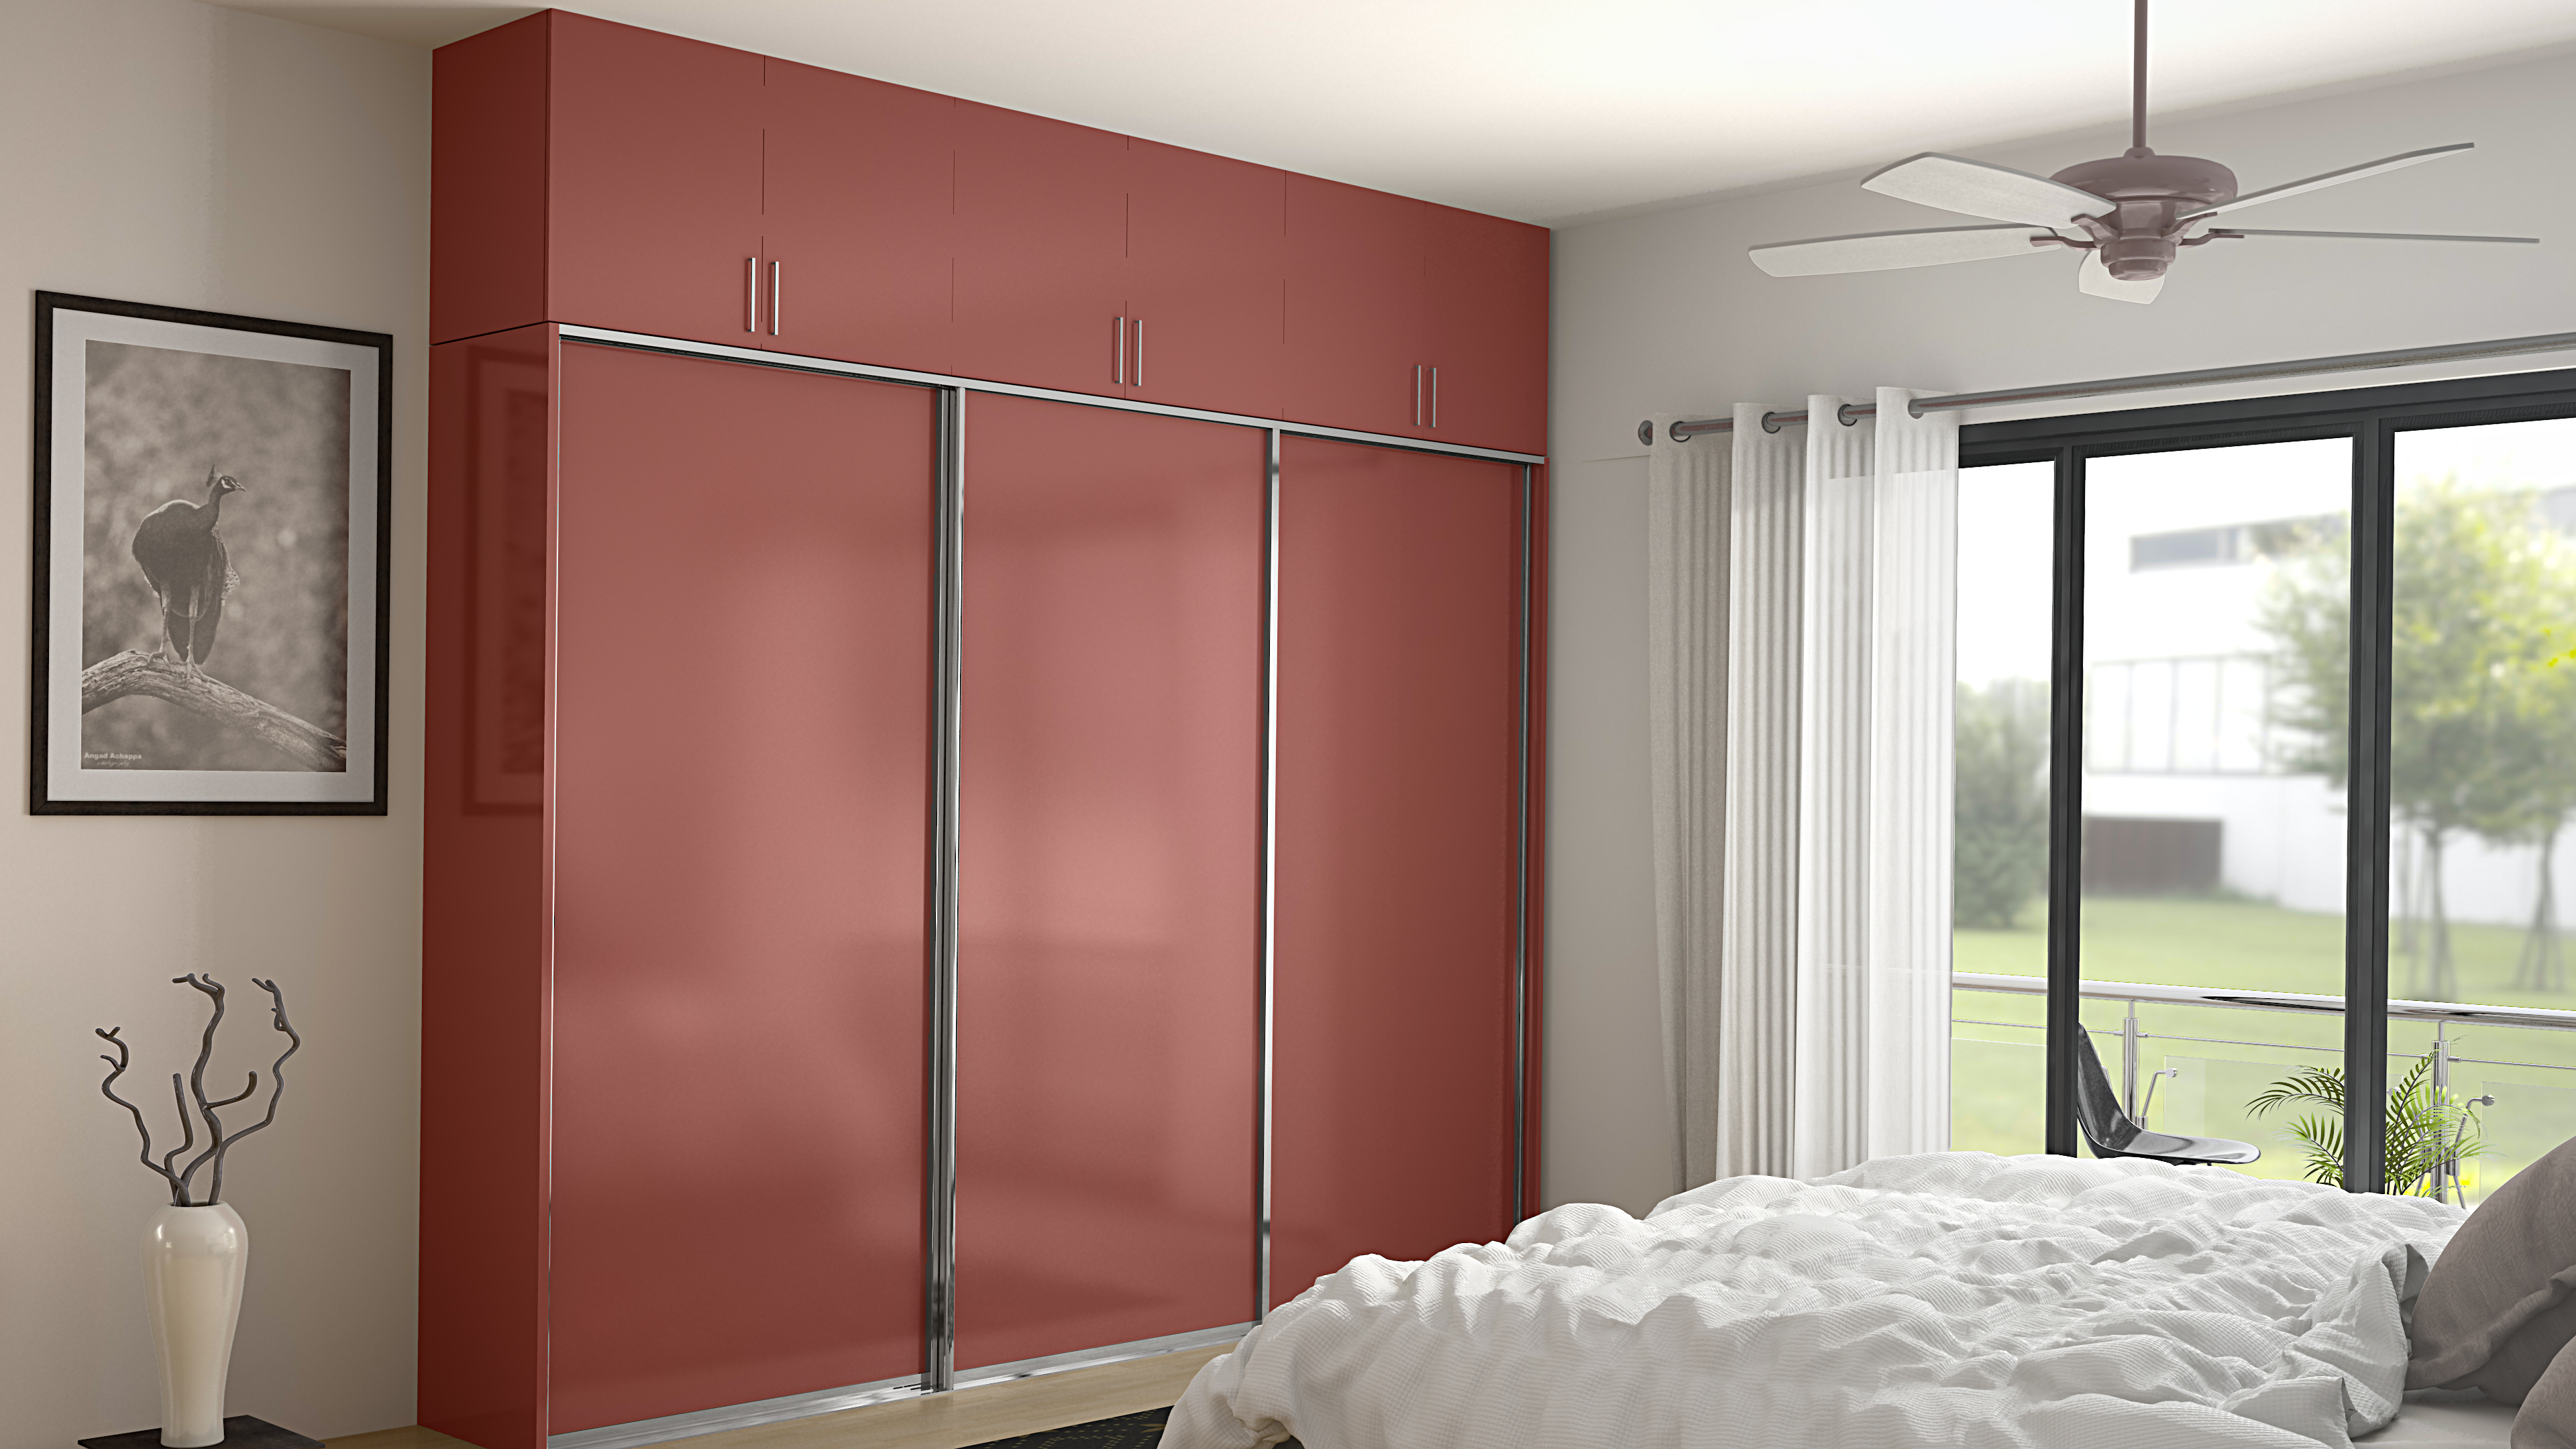 6 trendy wardrobe door designs from homelane homelane for Sliding wardrobe interior designs